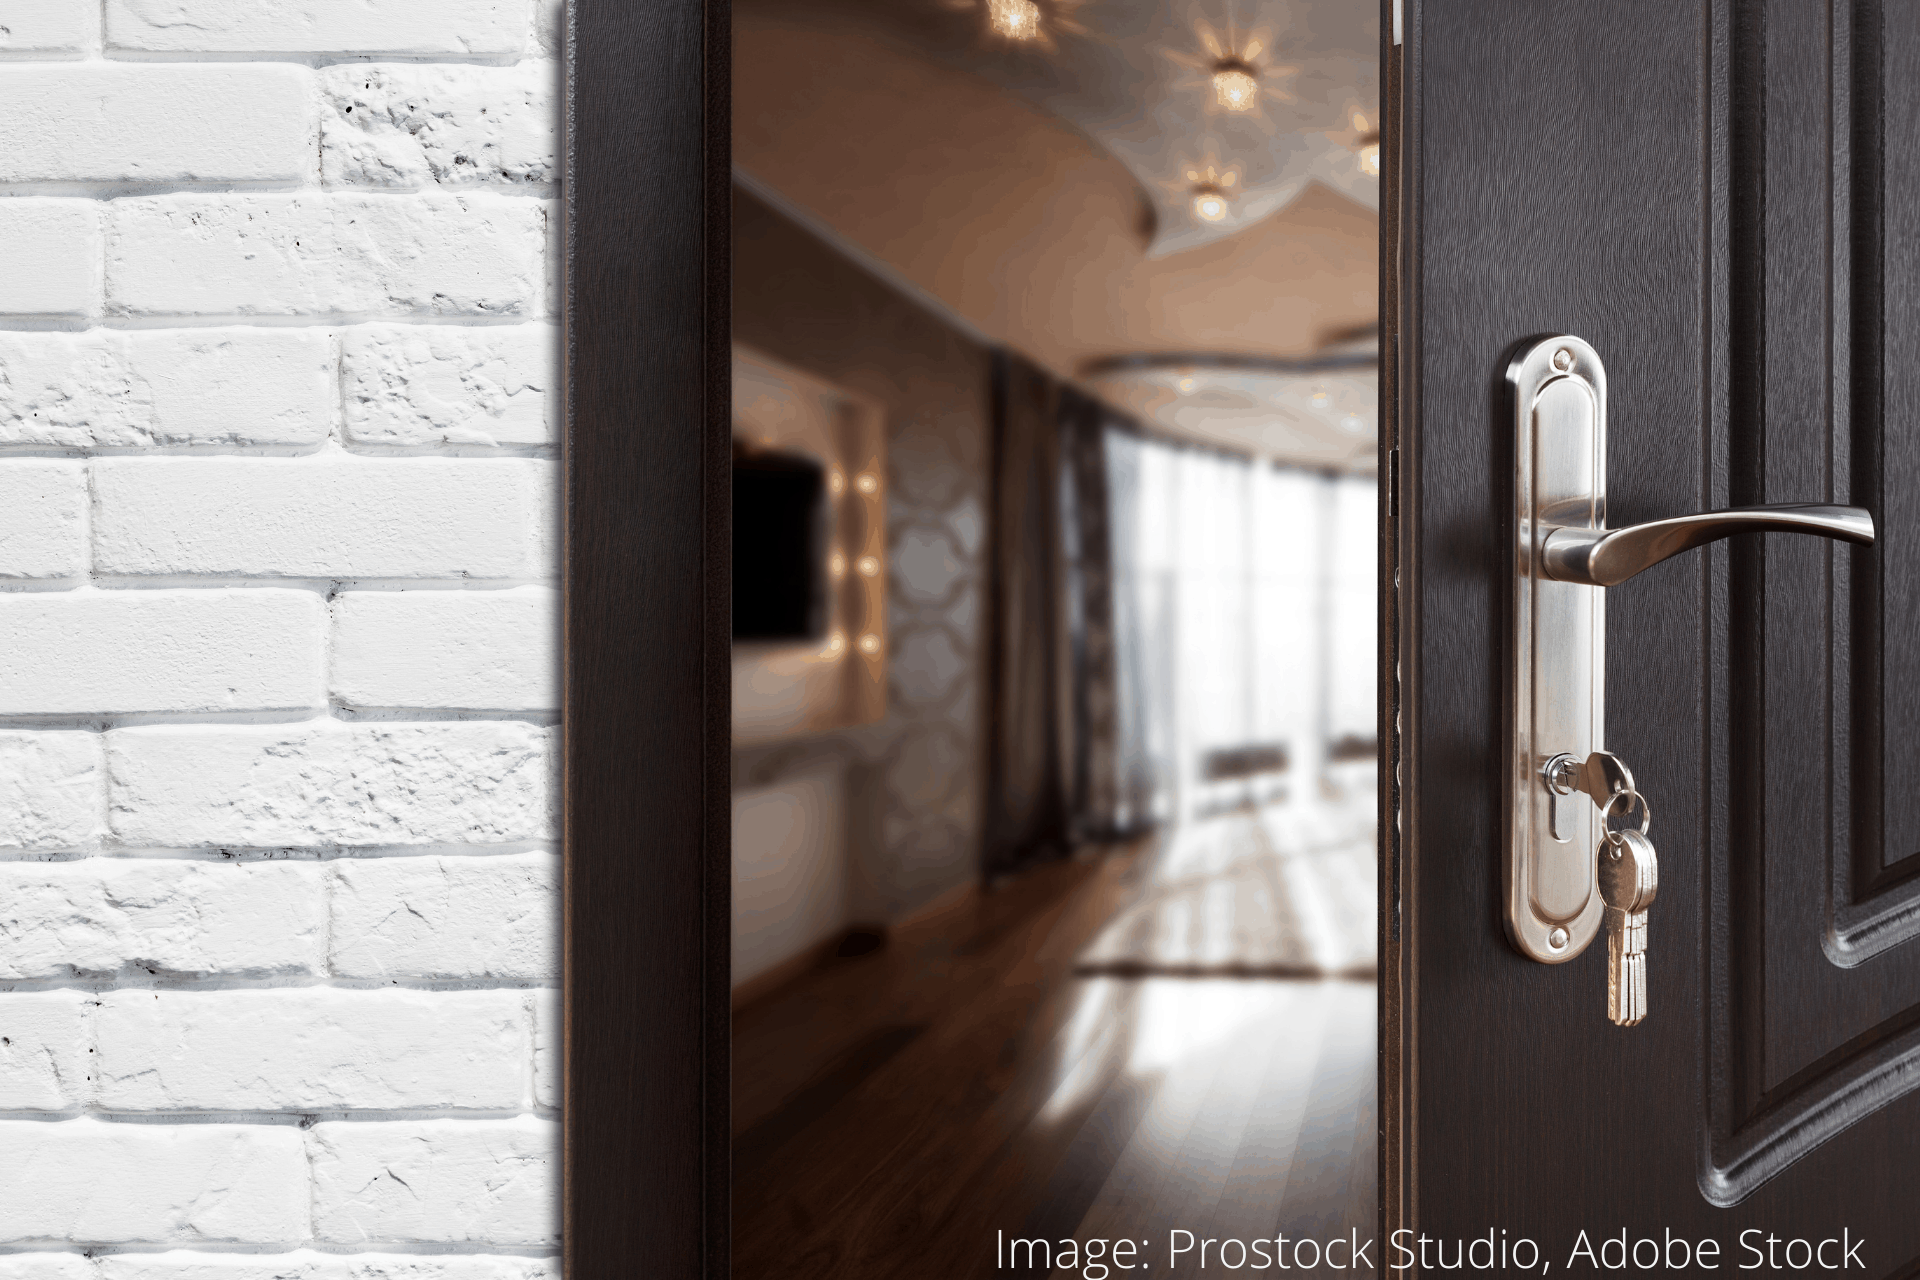 image prostock studio , adobe stock